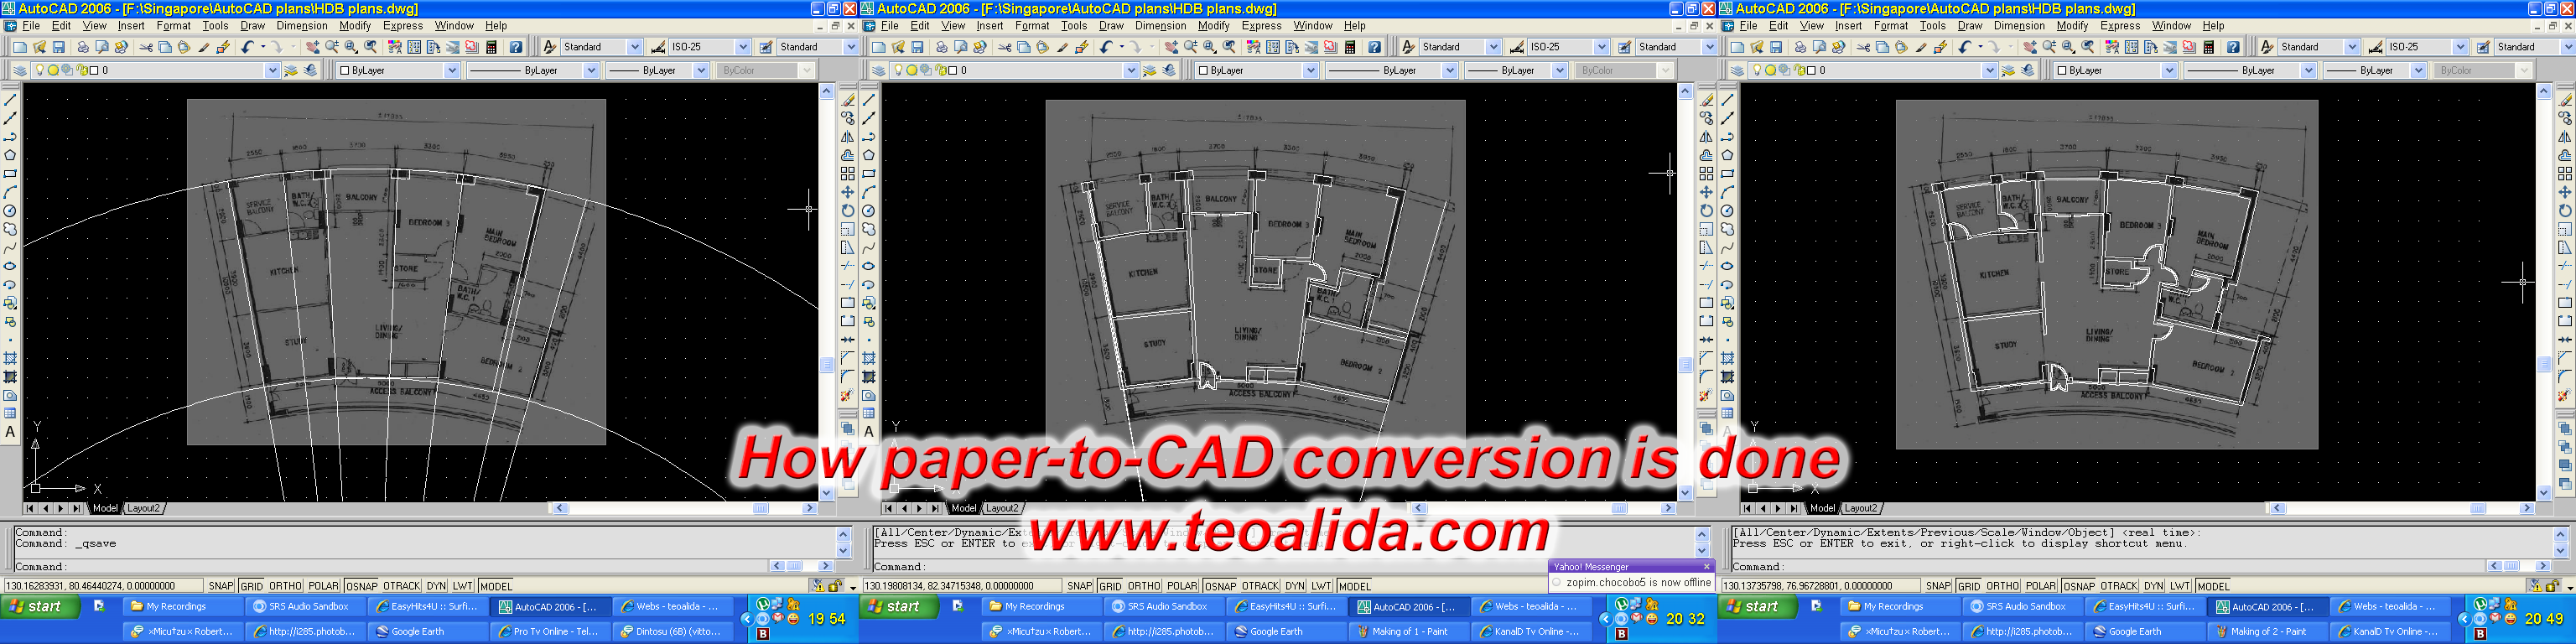 Paper to CAD conversion making of